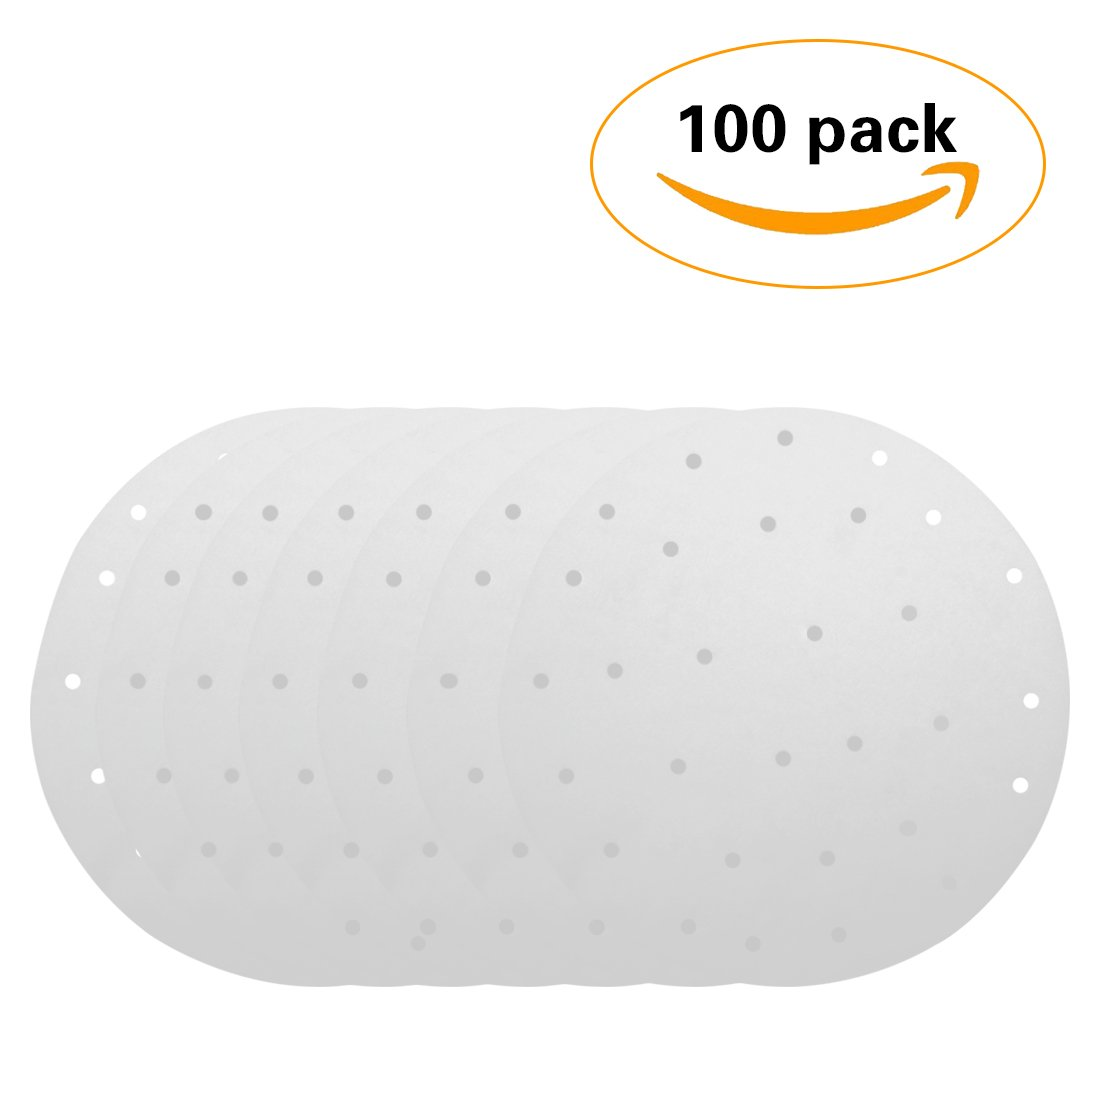 Non Stick For Air Fryer Rice Dim Sum SP-100 Steaming Basket JINSEY Round Perforated Parchment Bamboo Steamer Paper Liners Cooking 100 Pack Vegetables 9 inch